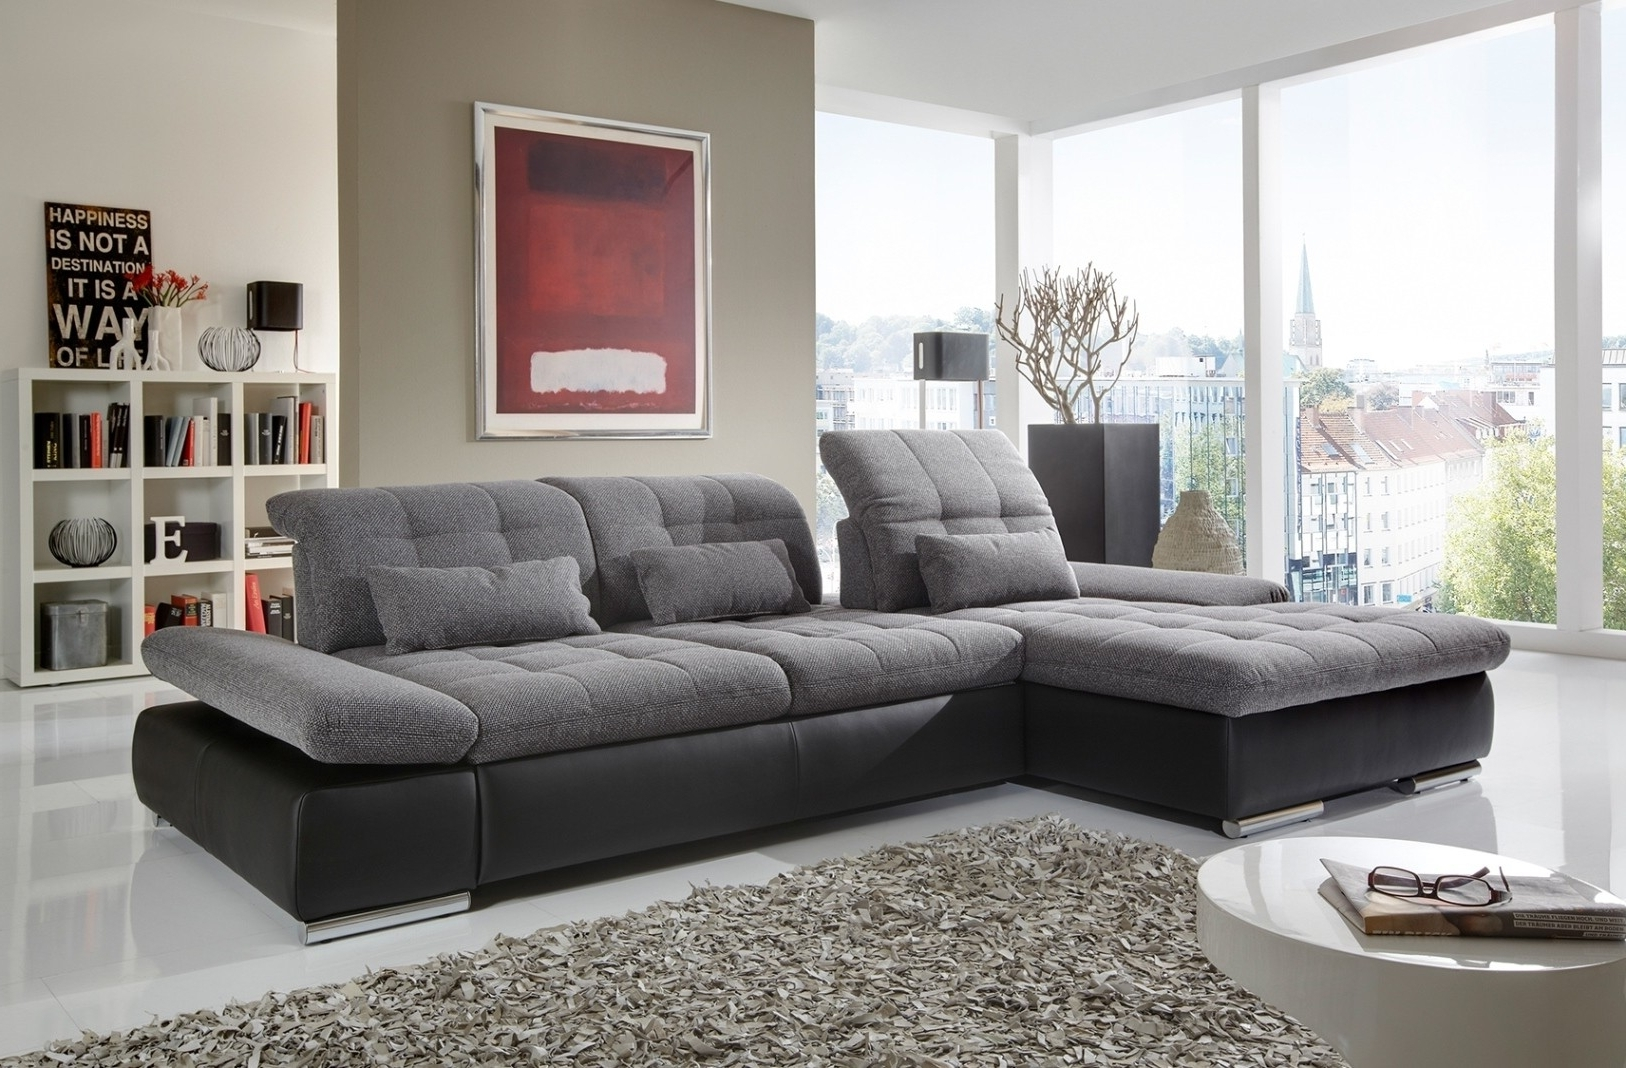 Alpine Sectional Sofa In Grey Fabric And Black Leather Left Chaise In Newest Trinidad And Tobago Sectional Sofas (View 1 of 20)